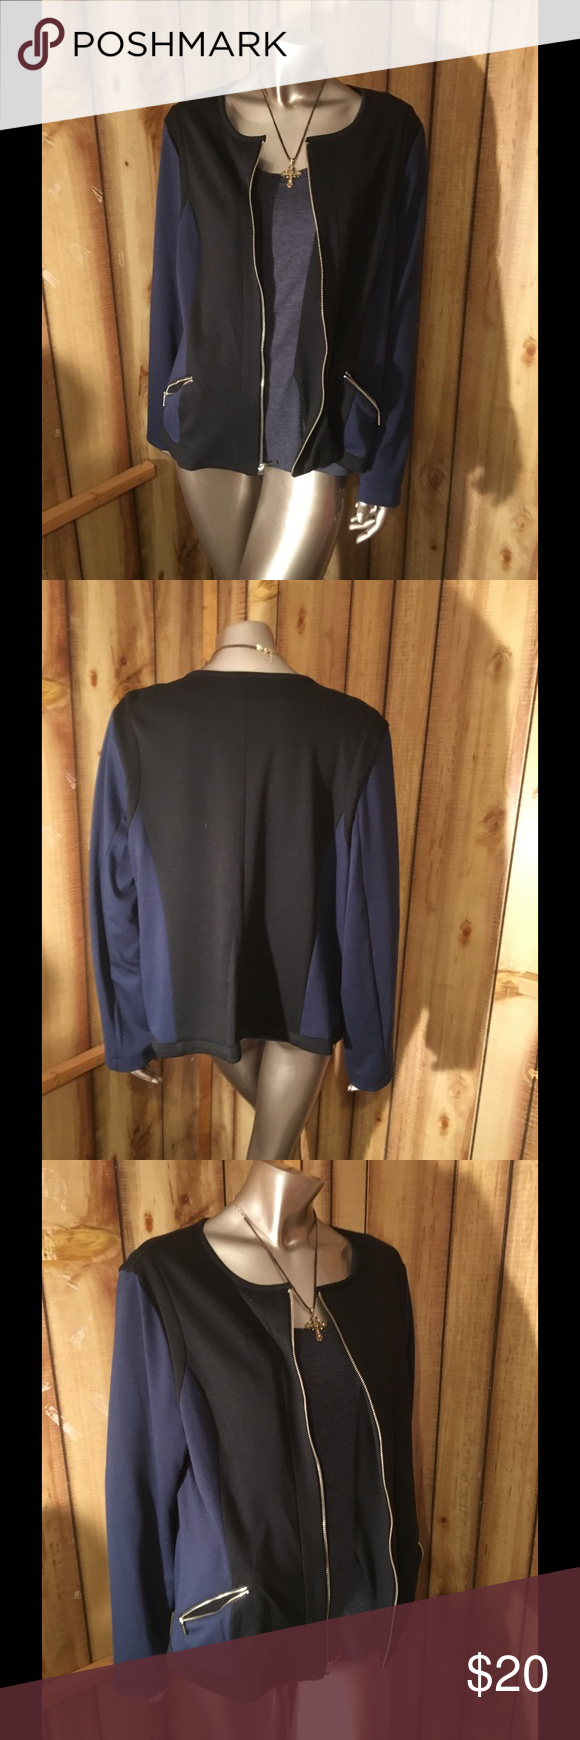 Blazer/jacket This jacket is color block blue and black. Zipper front and zipper pockets. Only worn 1 or 2 times.  Non smoking non pet home. Notations Jackets & Coats Blazers